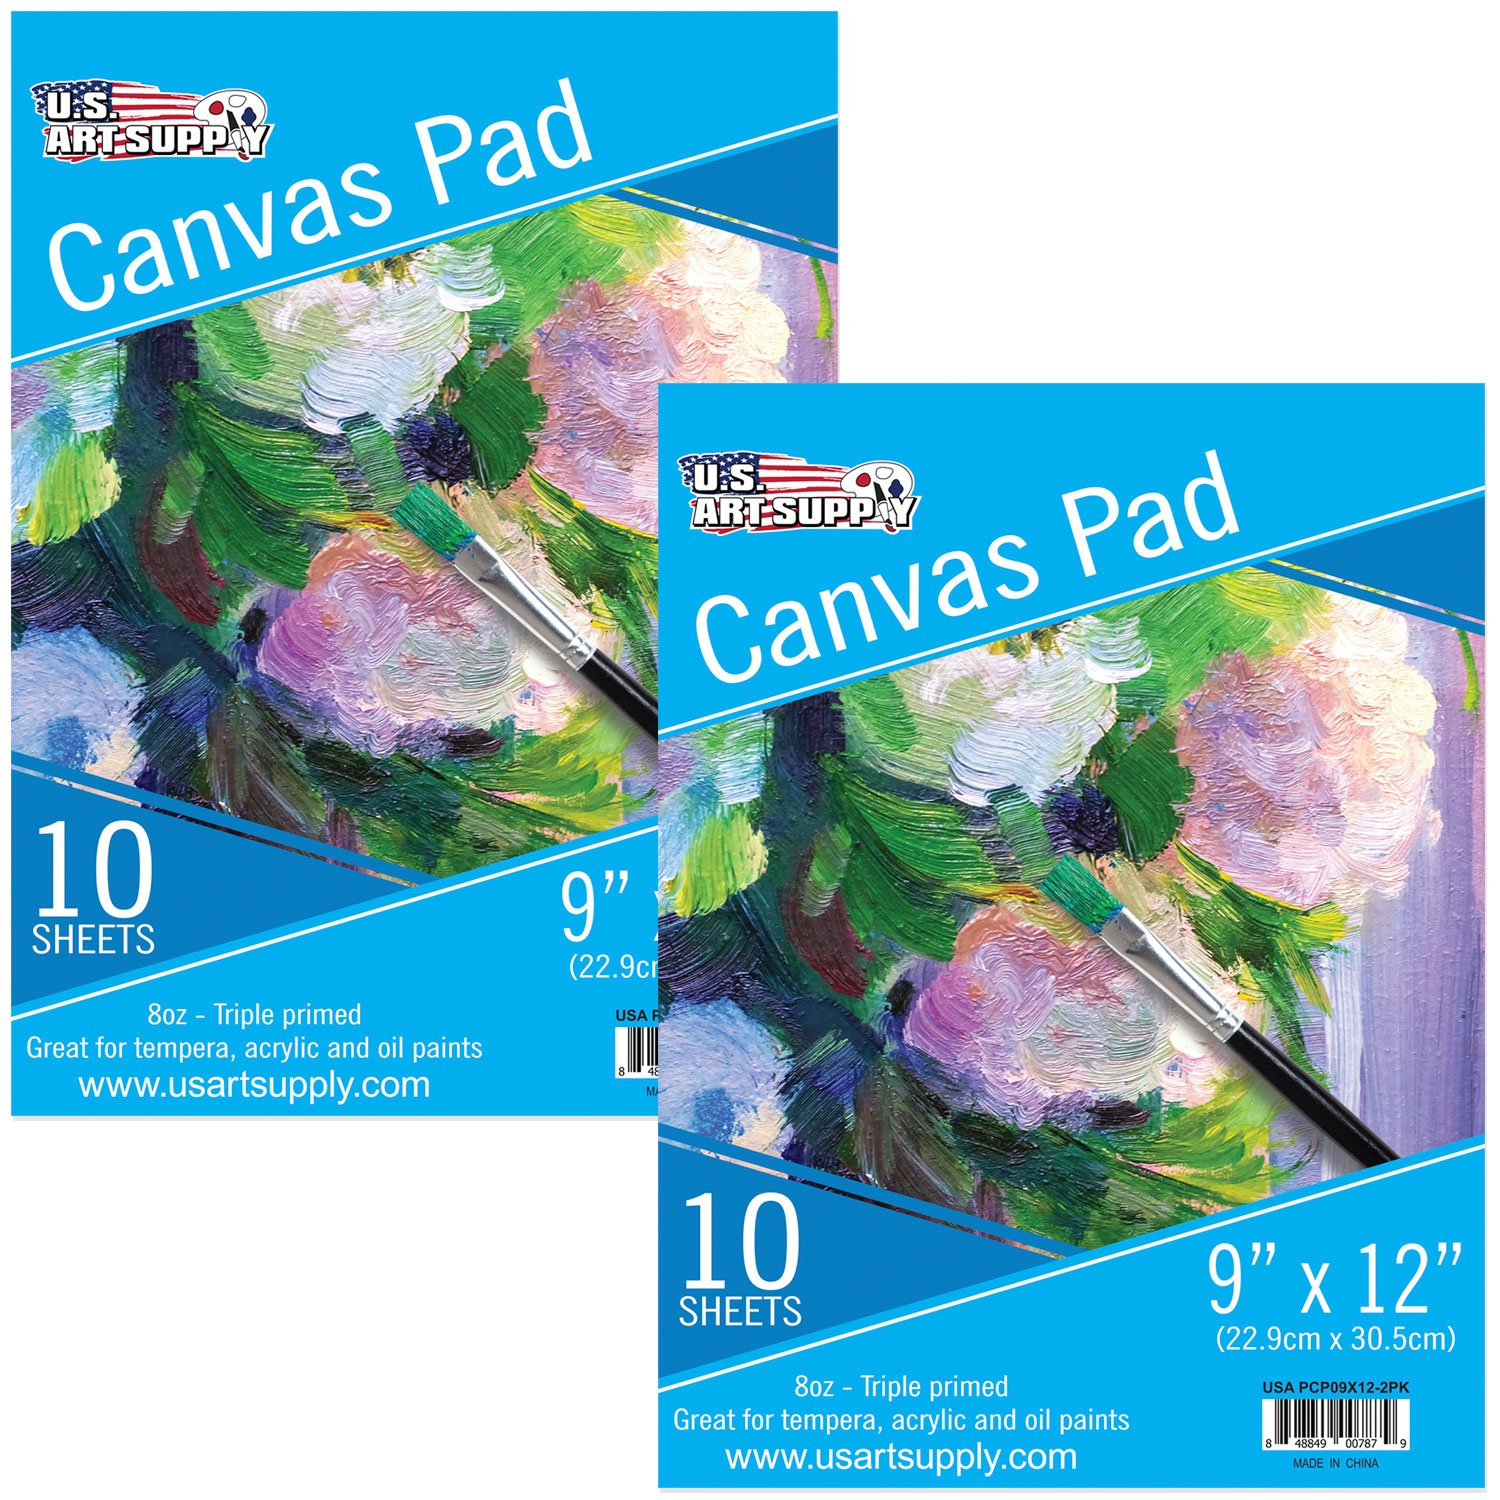 U.S. Art Supply 9'' x 12'' 10-Sheet 8-Ounce Triple Primed Acid-Free Canvas Paper Pad (Pack of 2 Pads) by US Art Supply